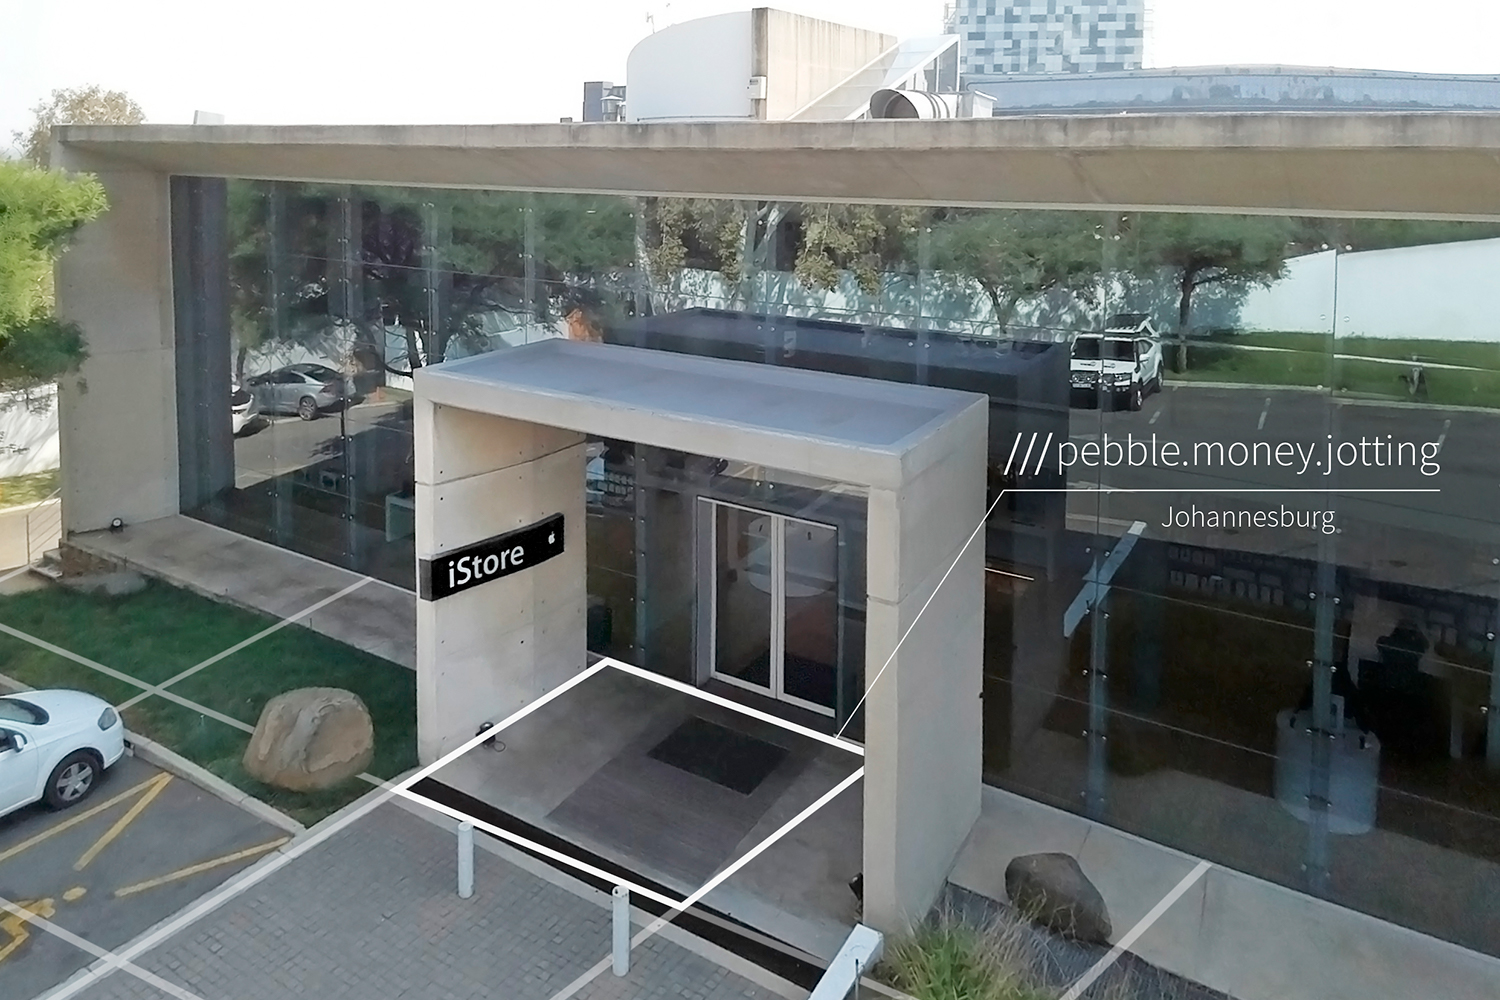 modern building at 3 word address pebble.money.jotting